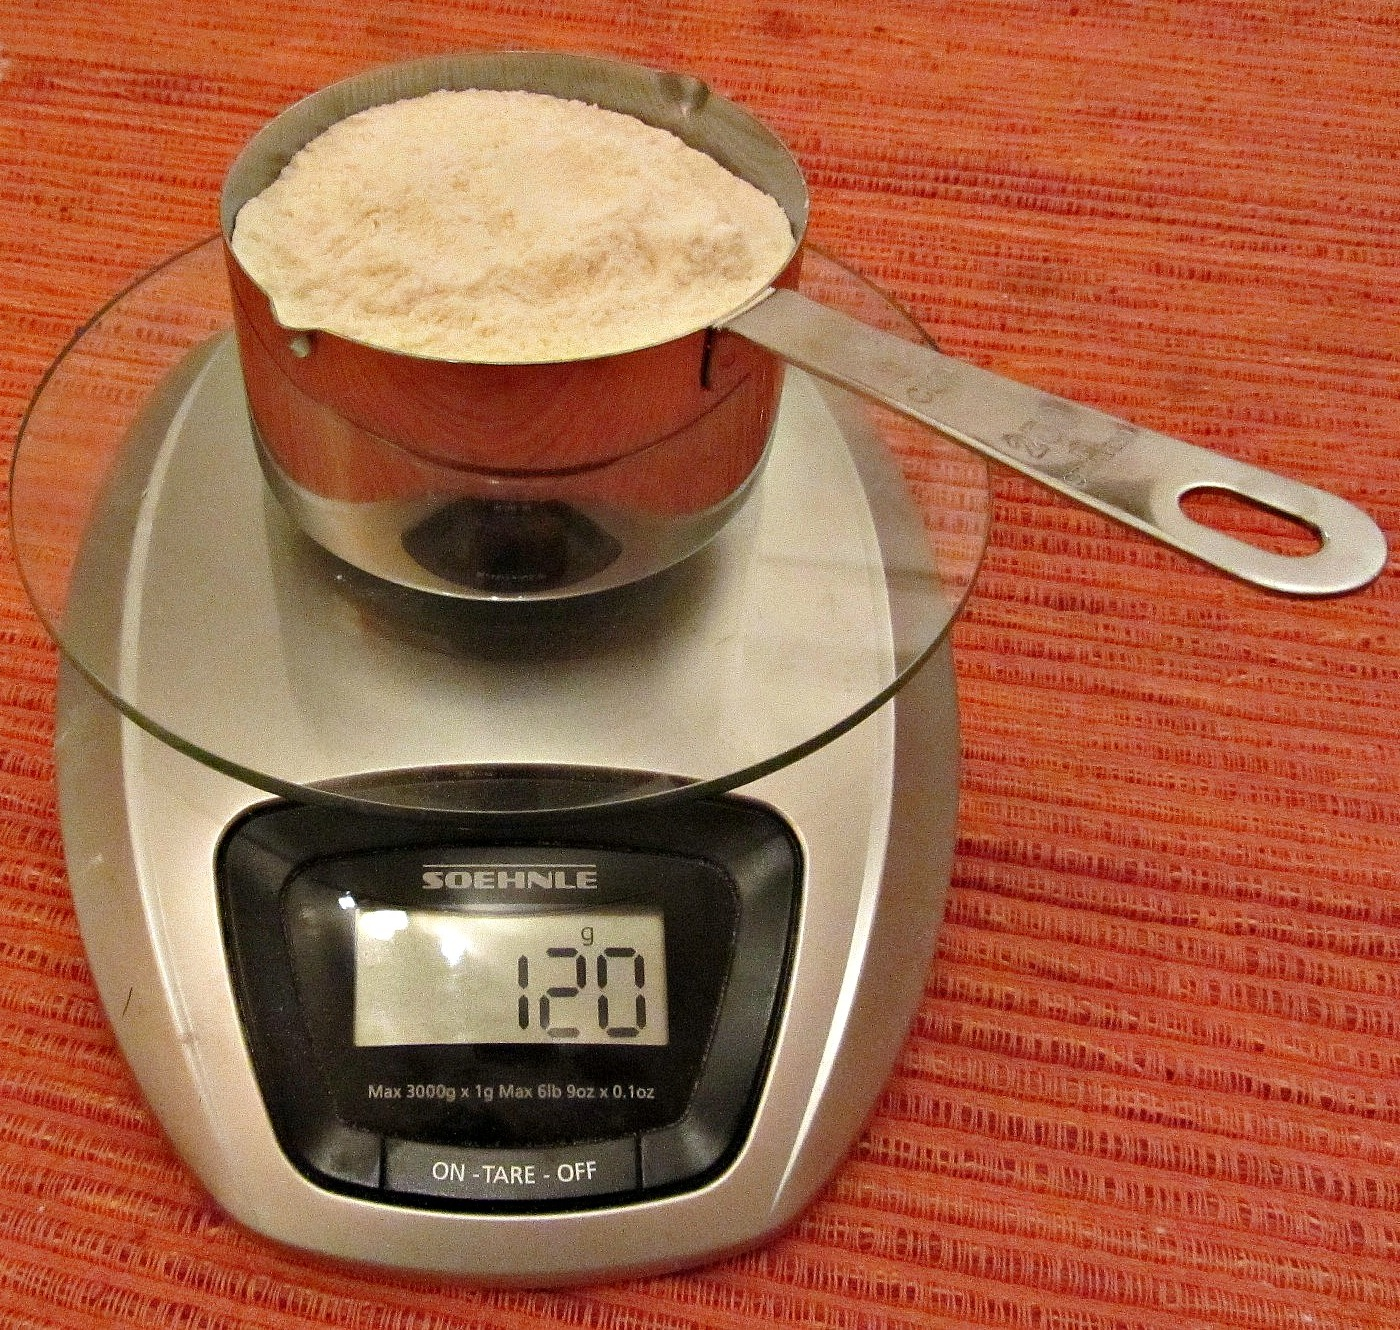 Measuring Cup Equivalent To Grams Thermofun Thermomix Cups To Grams Conversions Thermofun